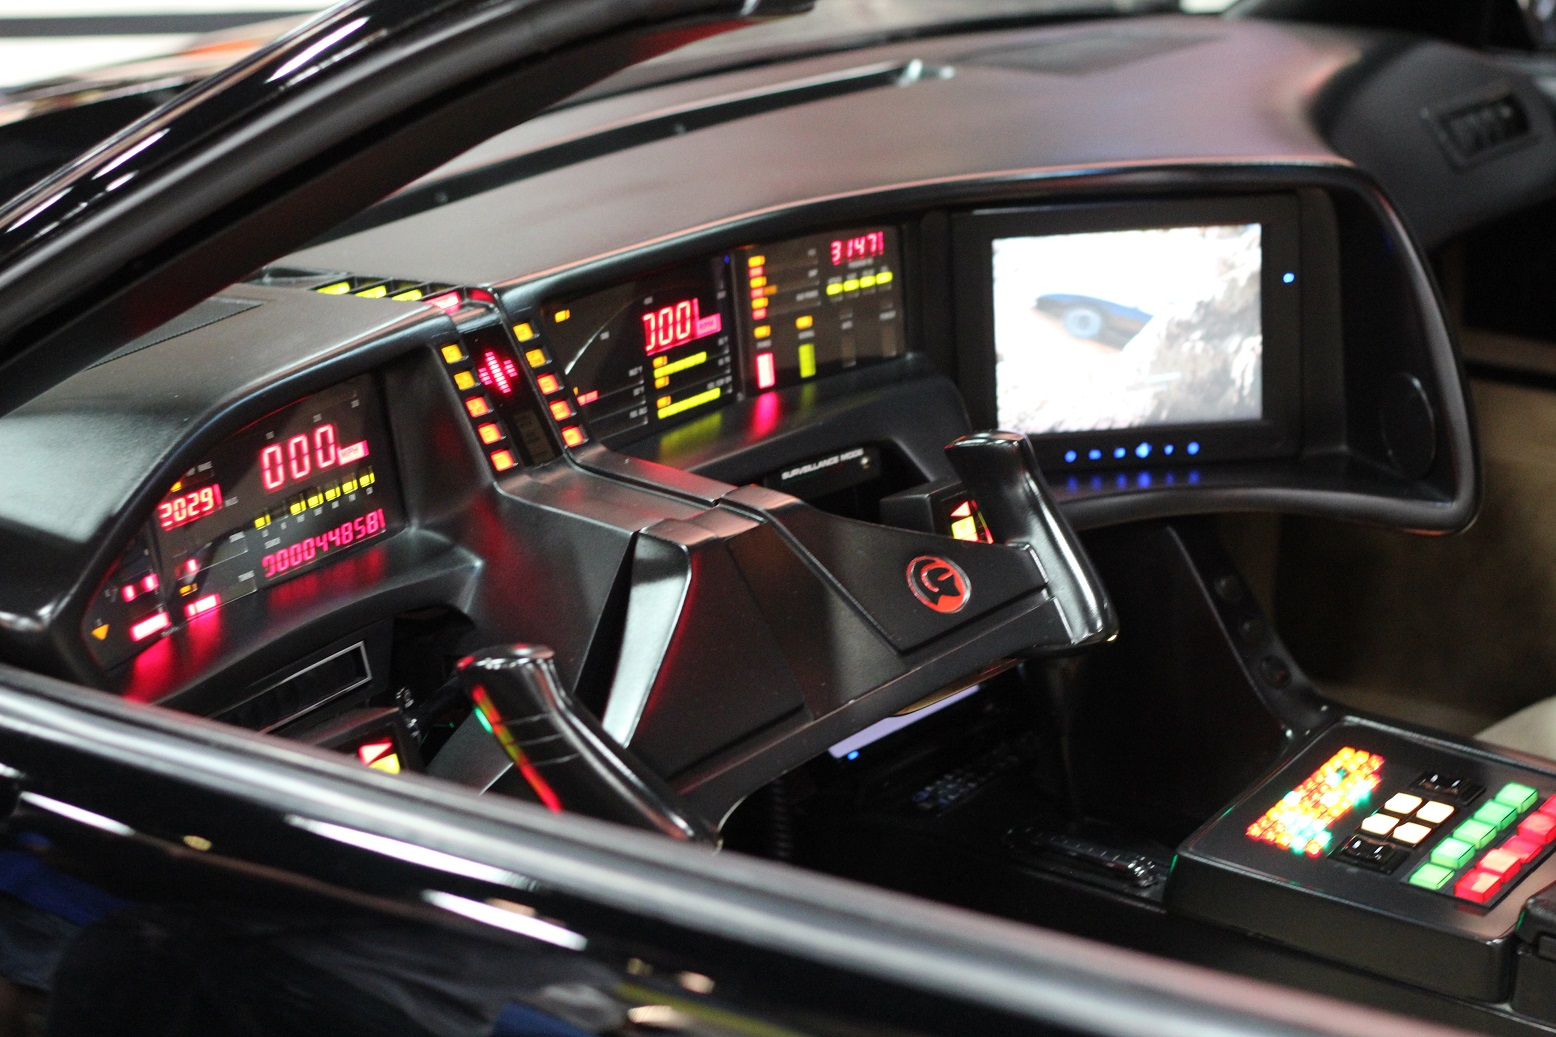 driver in a connected car